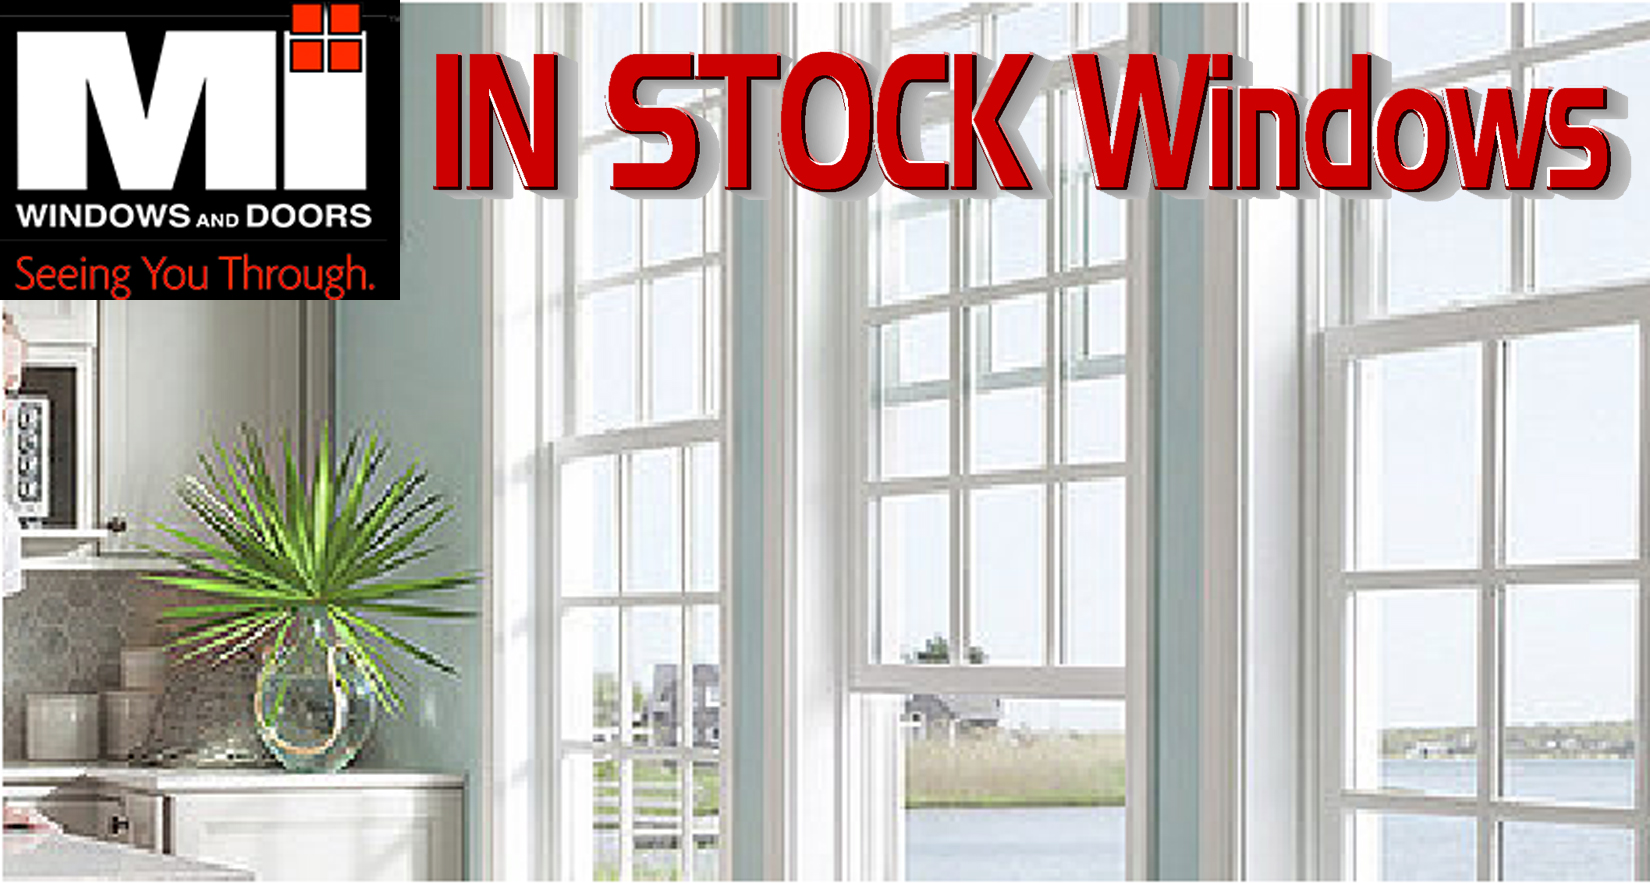 replacement windows buffalo ny double hung we are authorized dealers for mi windows doors windows and doors some of the most energyefficient products currently on market replacement buffalo north tonawanda orchard